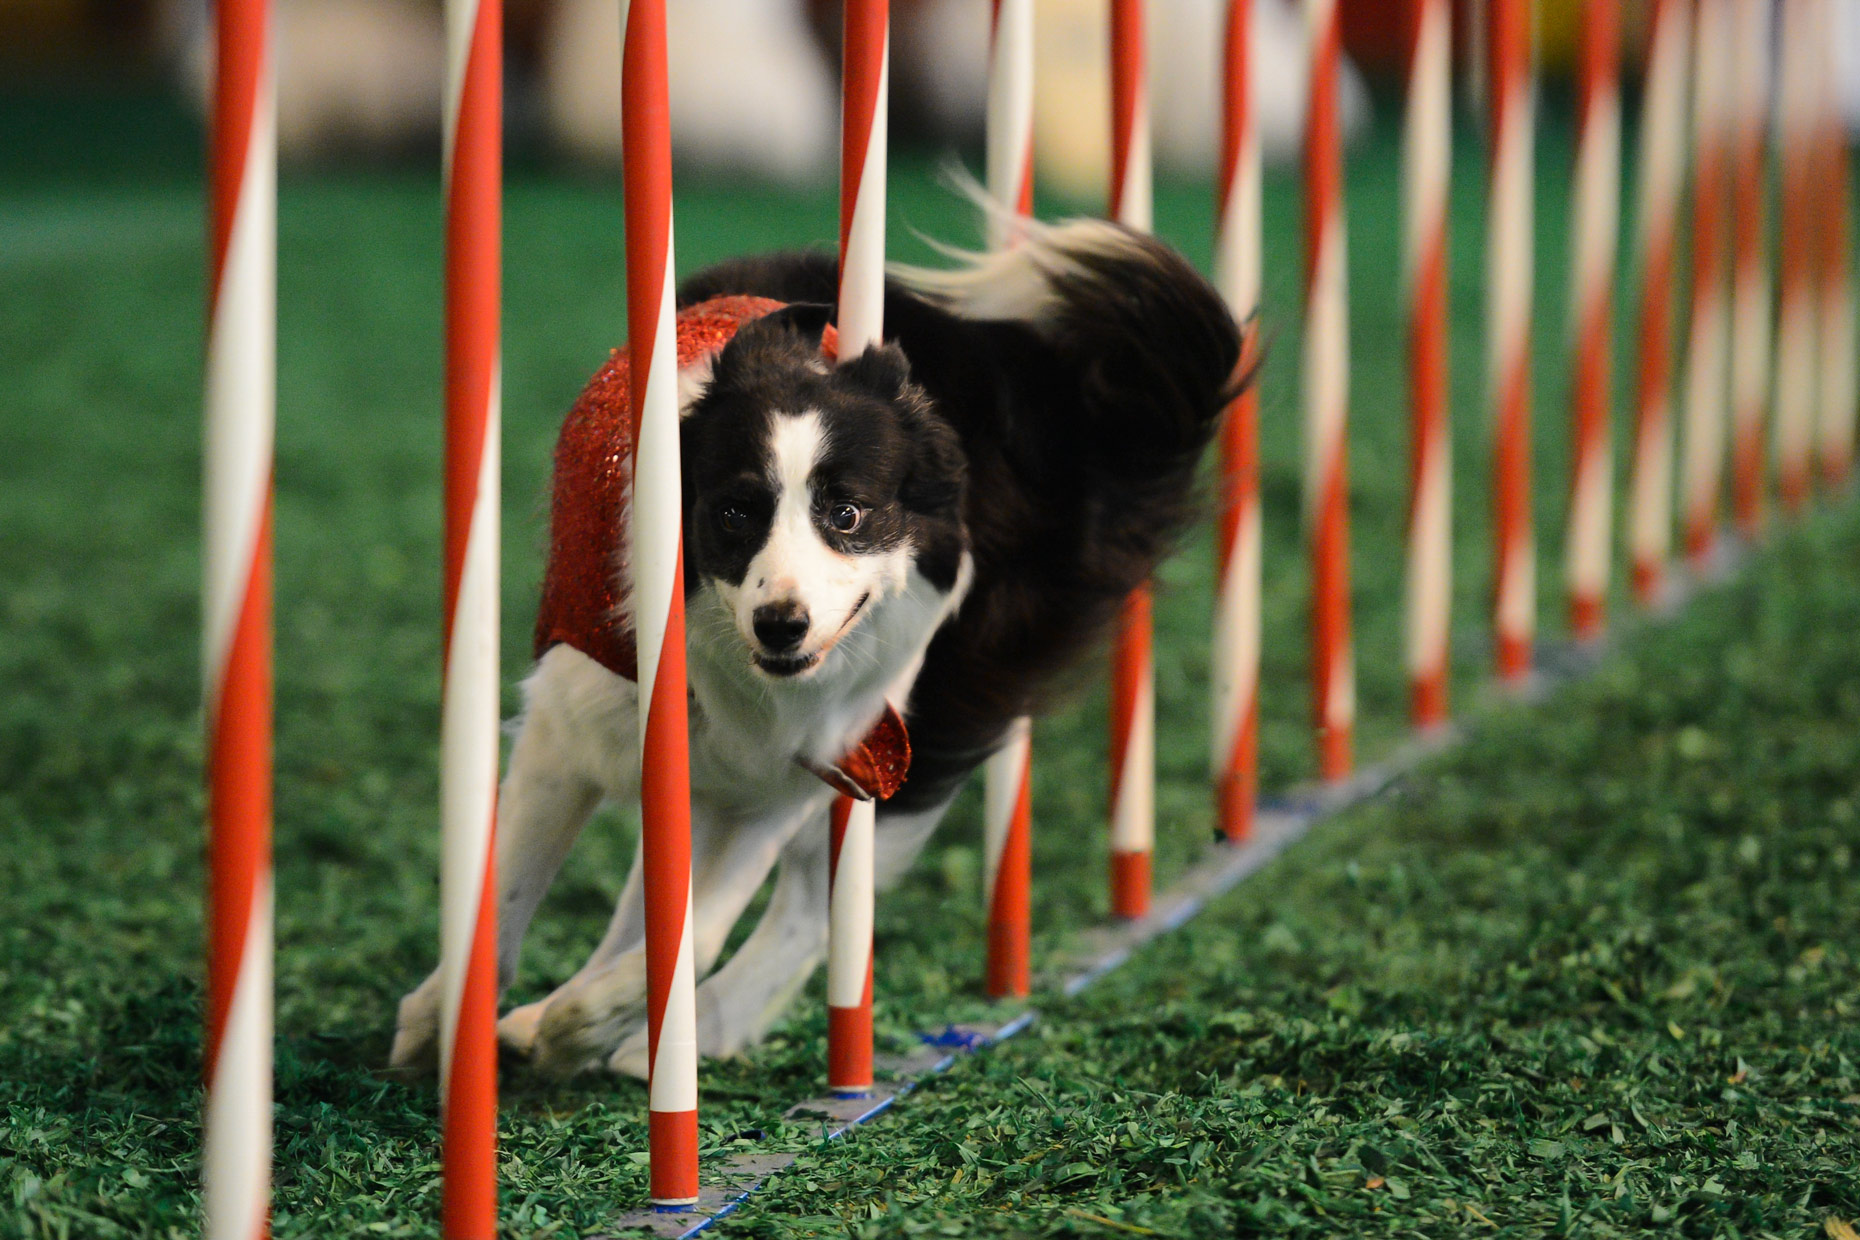 Contest dogs at The State Fair of Texas. Photography by Kevin Brown